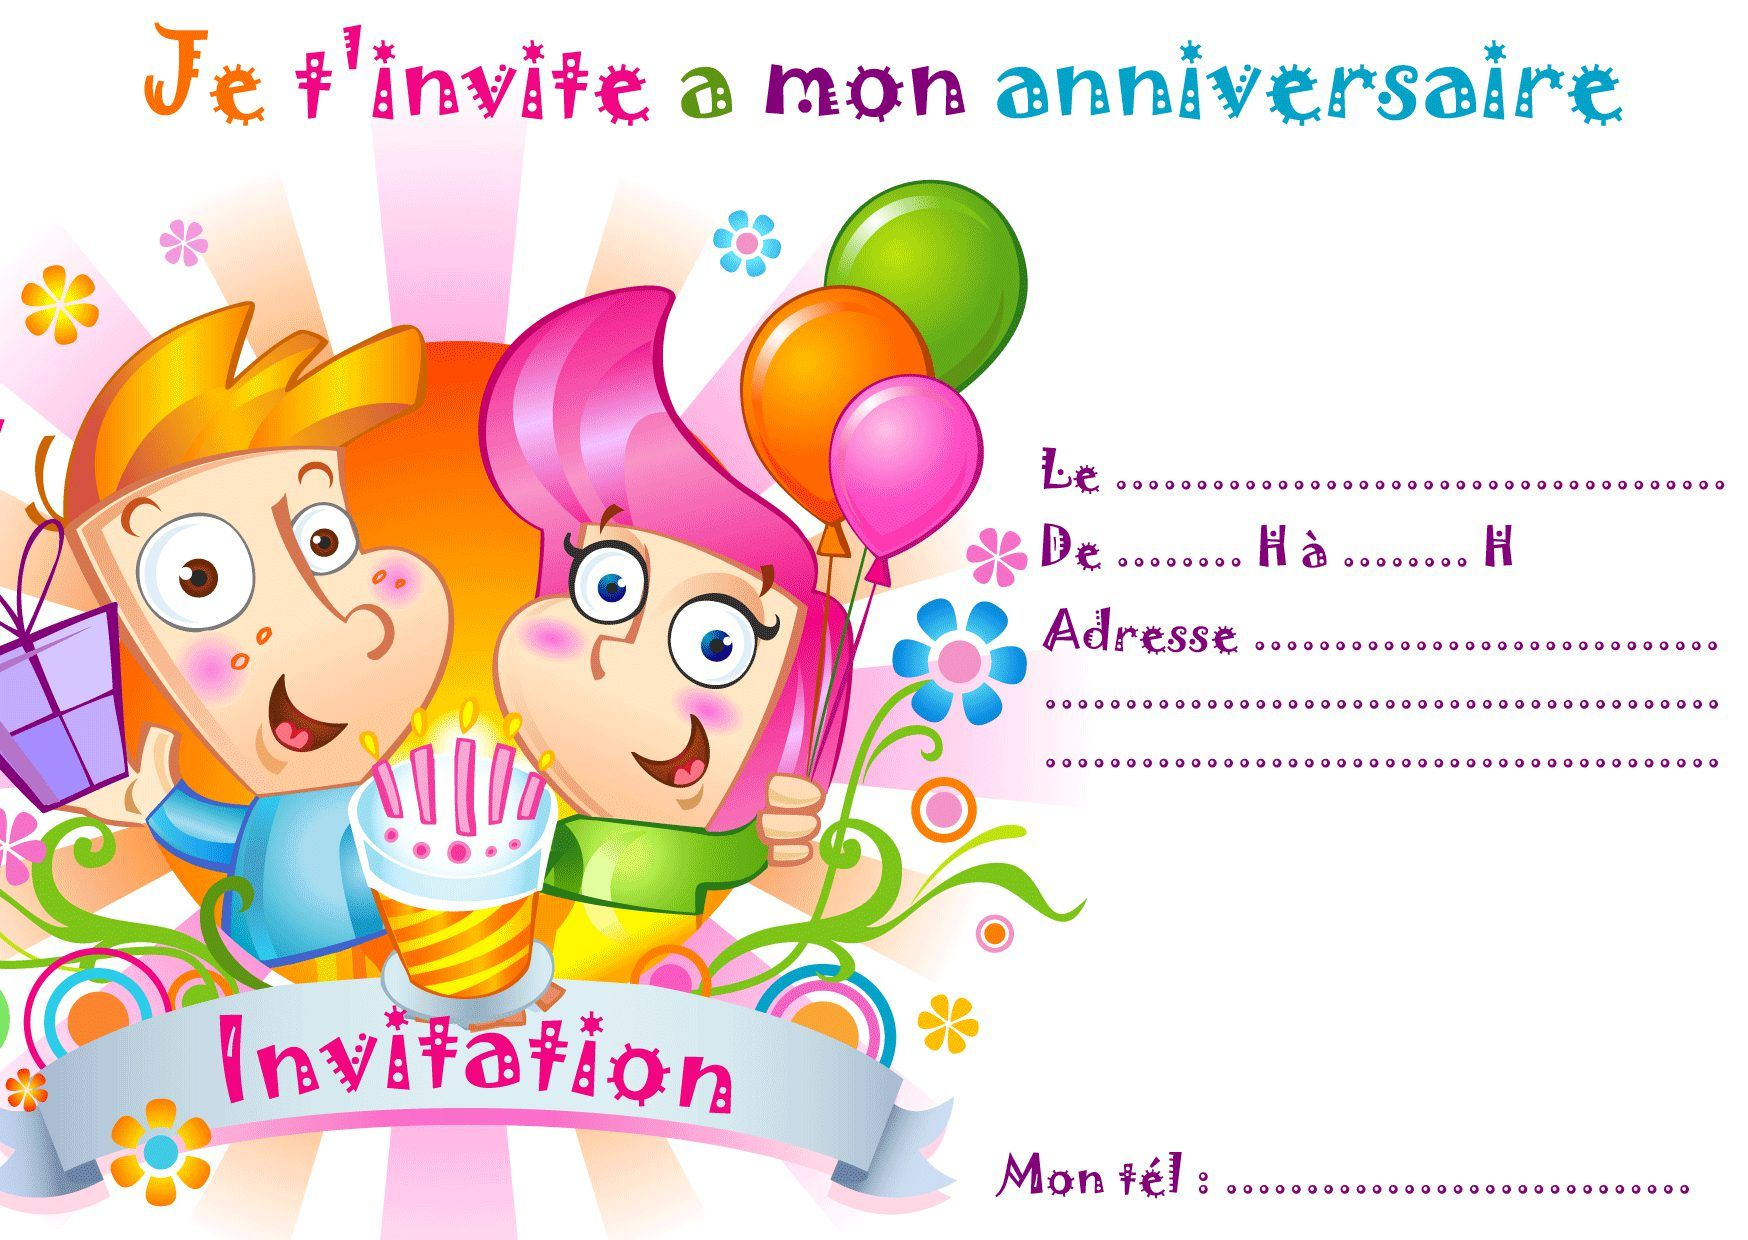 carte invitation anniversaire imprimer : Cartes invitatio